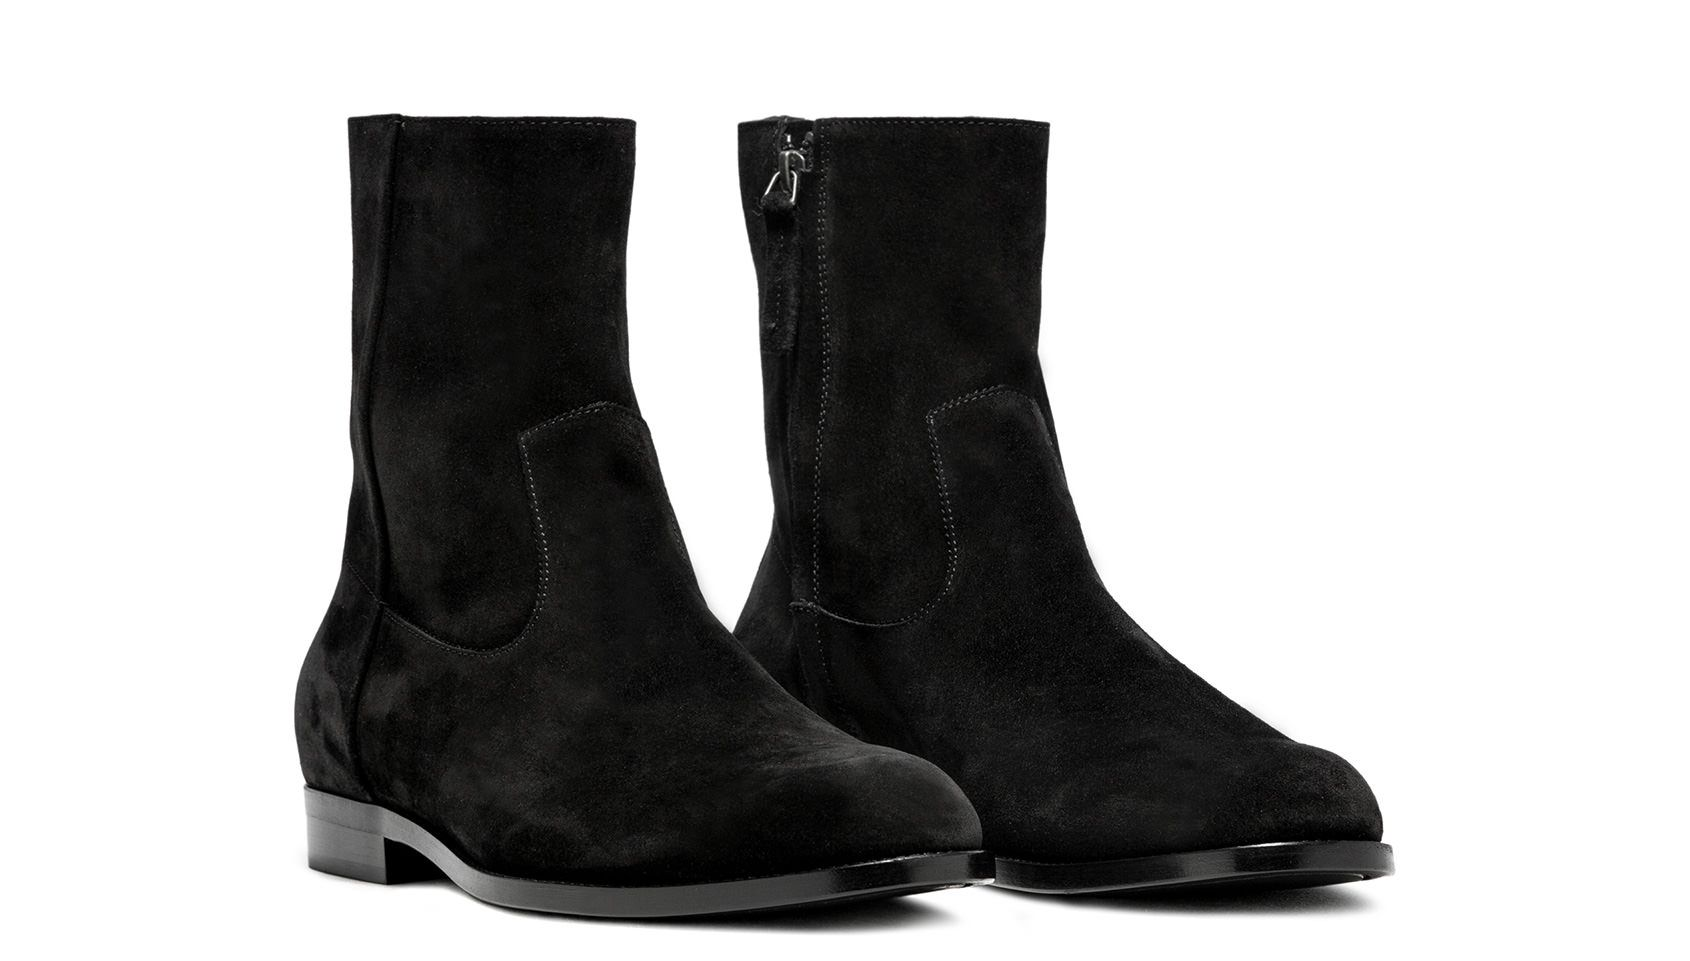 Buttero Black Suede Floyd Ankle Boots B8060gorh Uc1 01 Nero Boots Fall Shoes Boots And Sneakers